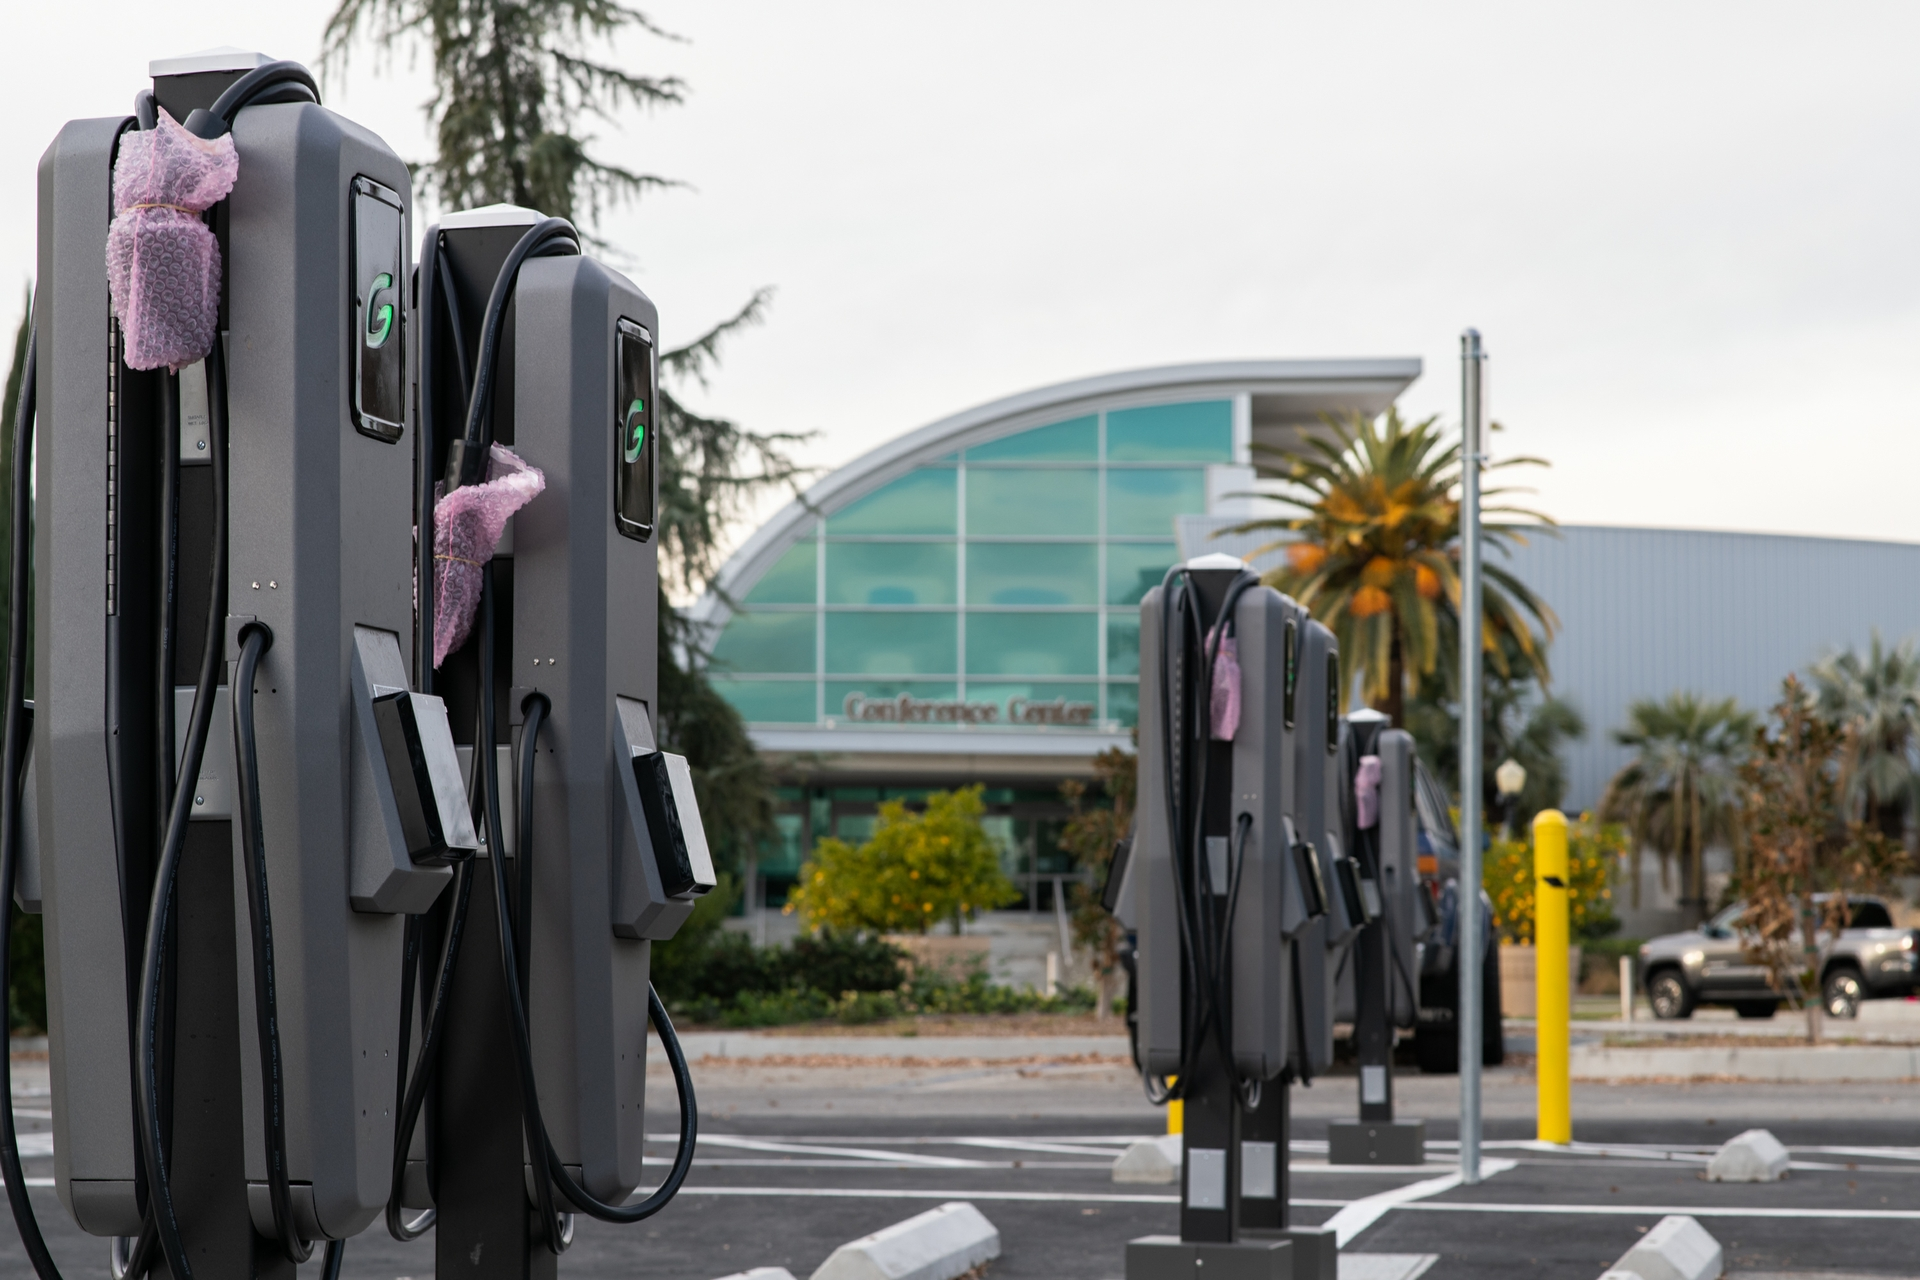 A total of 200 EV charging ports, so new they're still in plastic wrap, have been installed at Fairplex in Pomona, site of the L.A. County Fair.